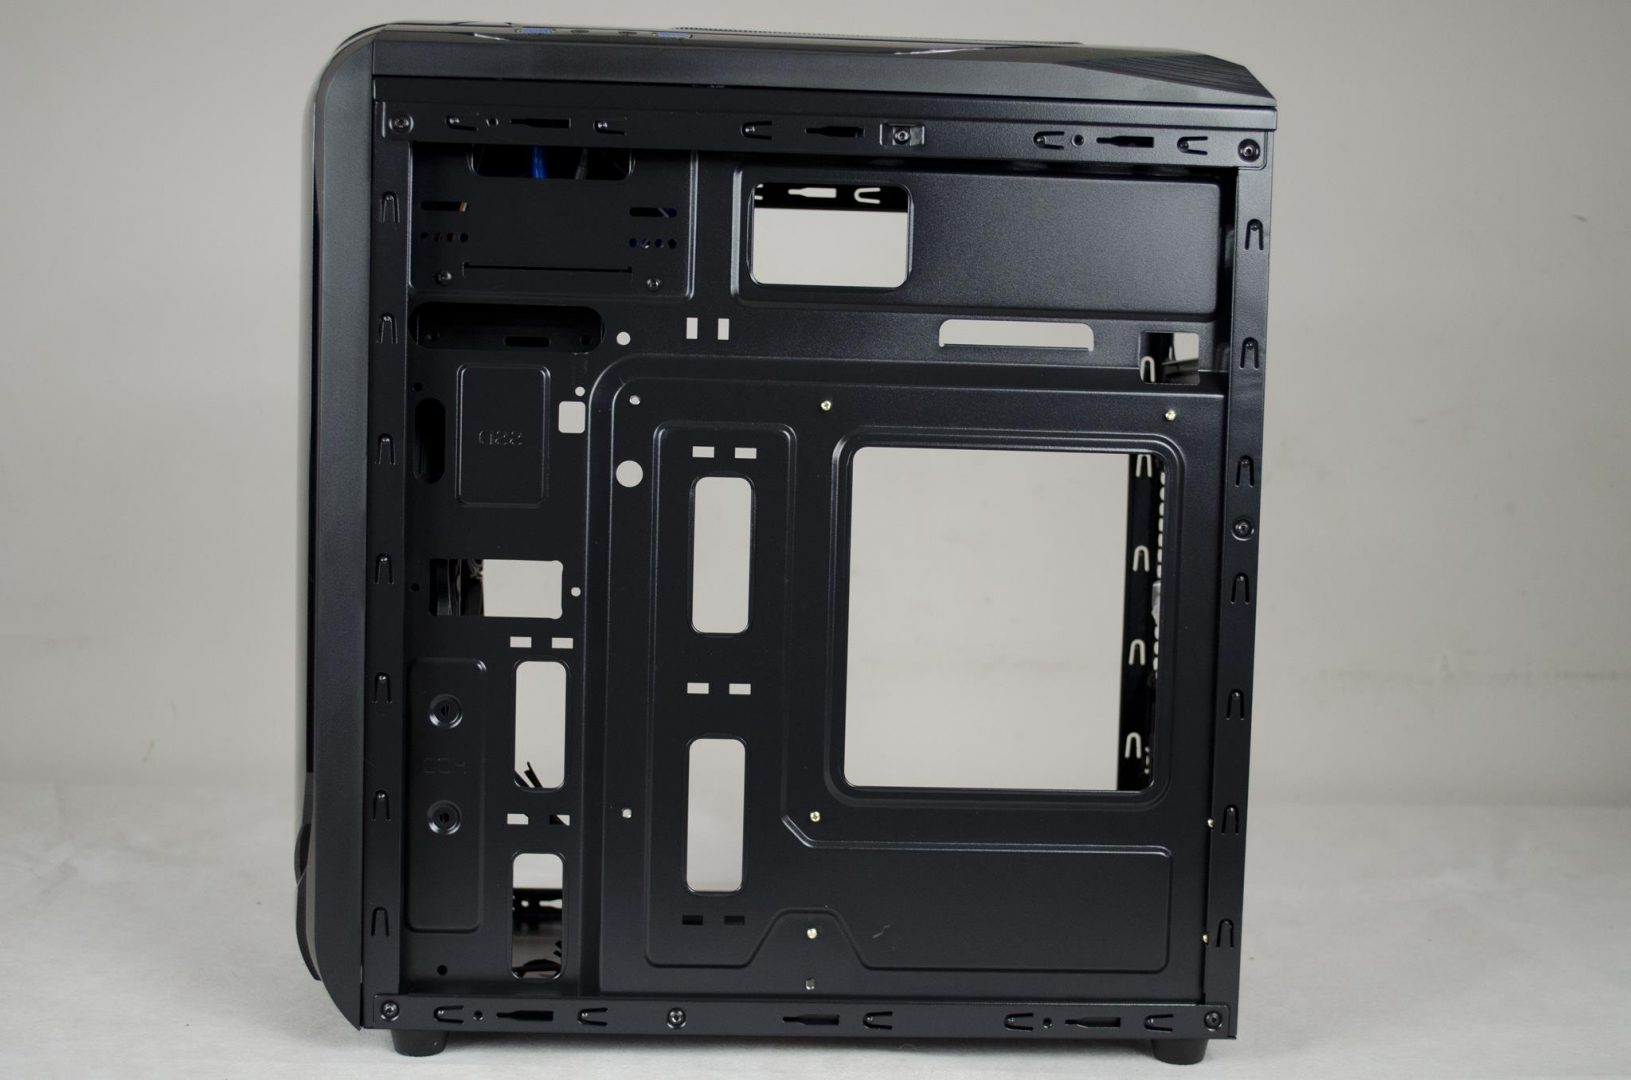 X2 SPITZER 22 PC Case Review_10